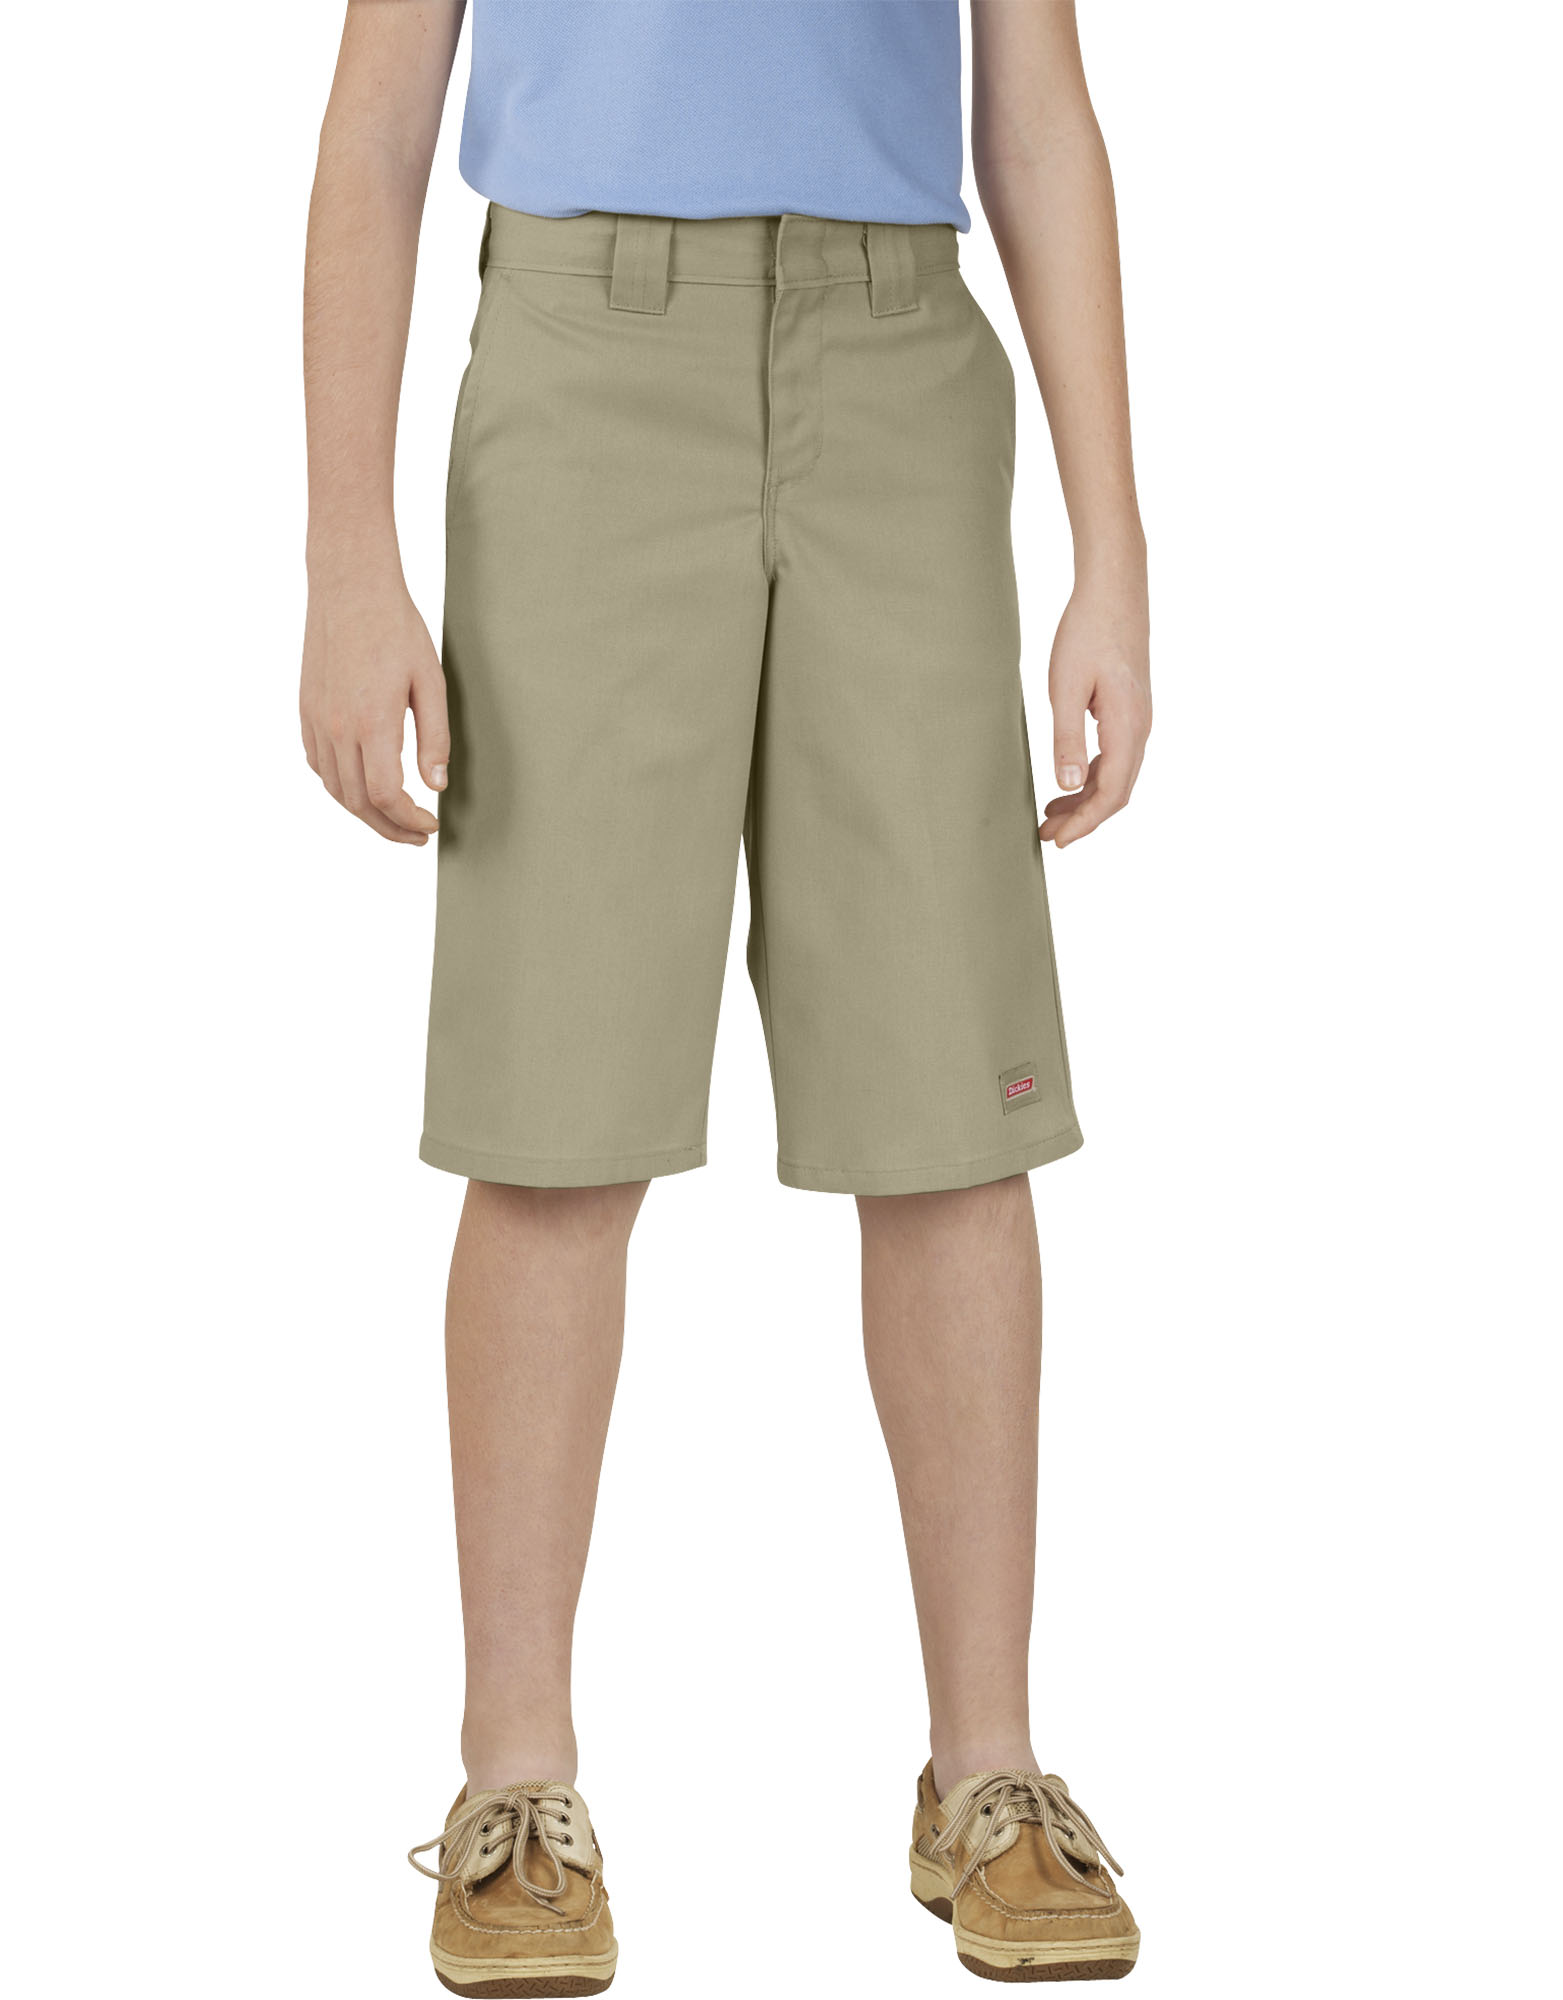 Genuine Dickies Boys' Classic Fit Multi-Use Pocket Shorts, 4-18H - Desert Khaki (DS)